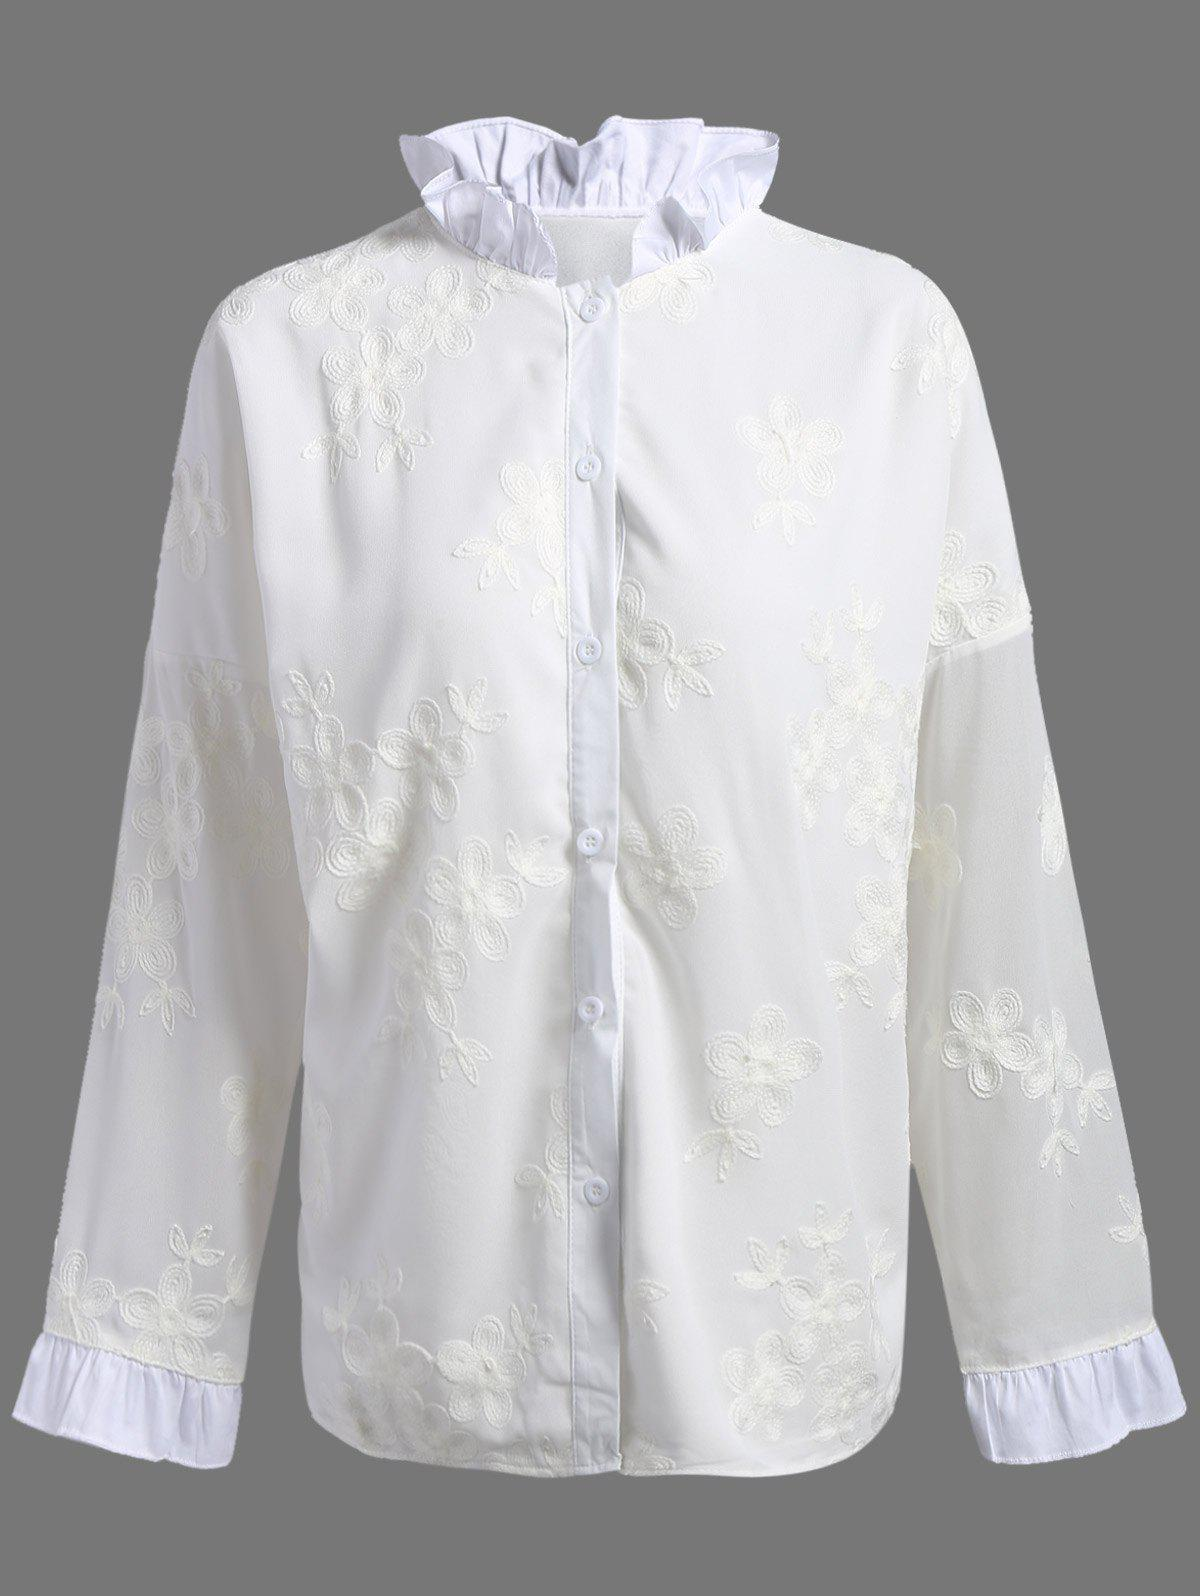 Floral Embroidered Ruffled Plus Size BlouseWomen<br><br><br>Size: 4XL<br>Color: WHITE